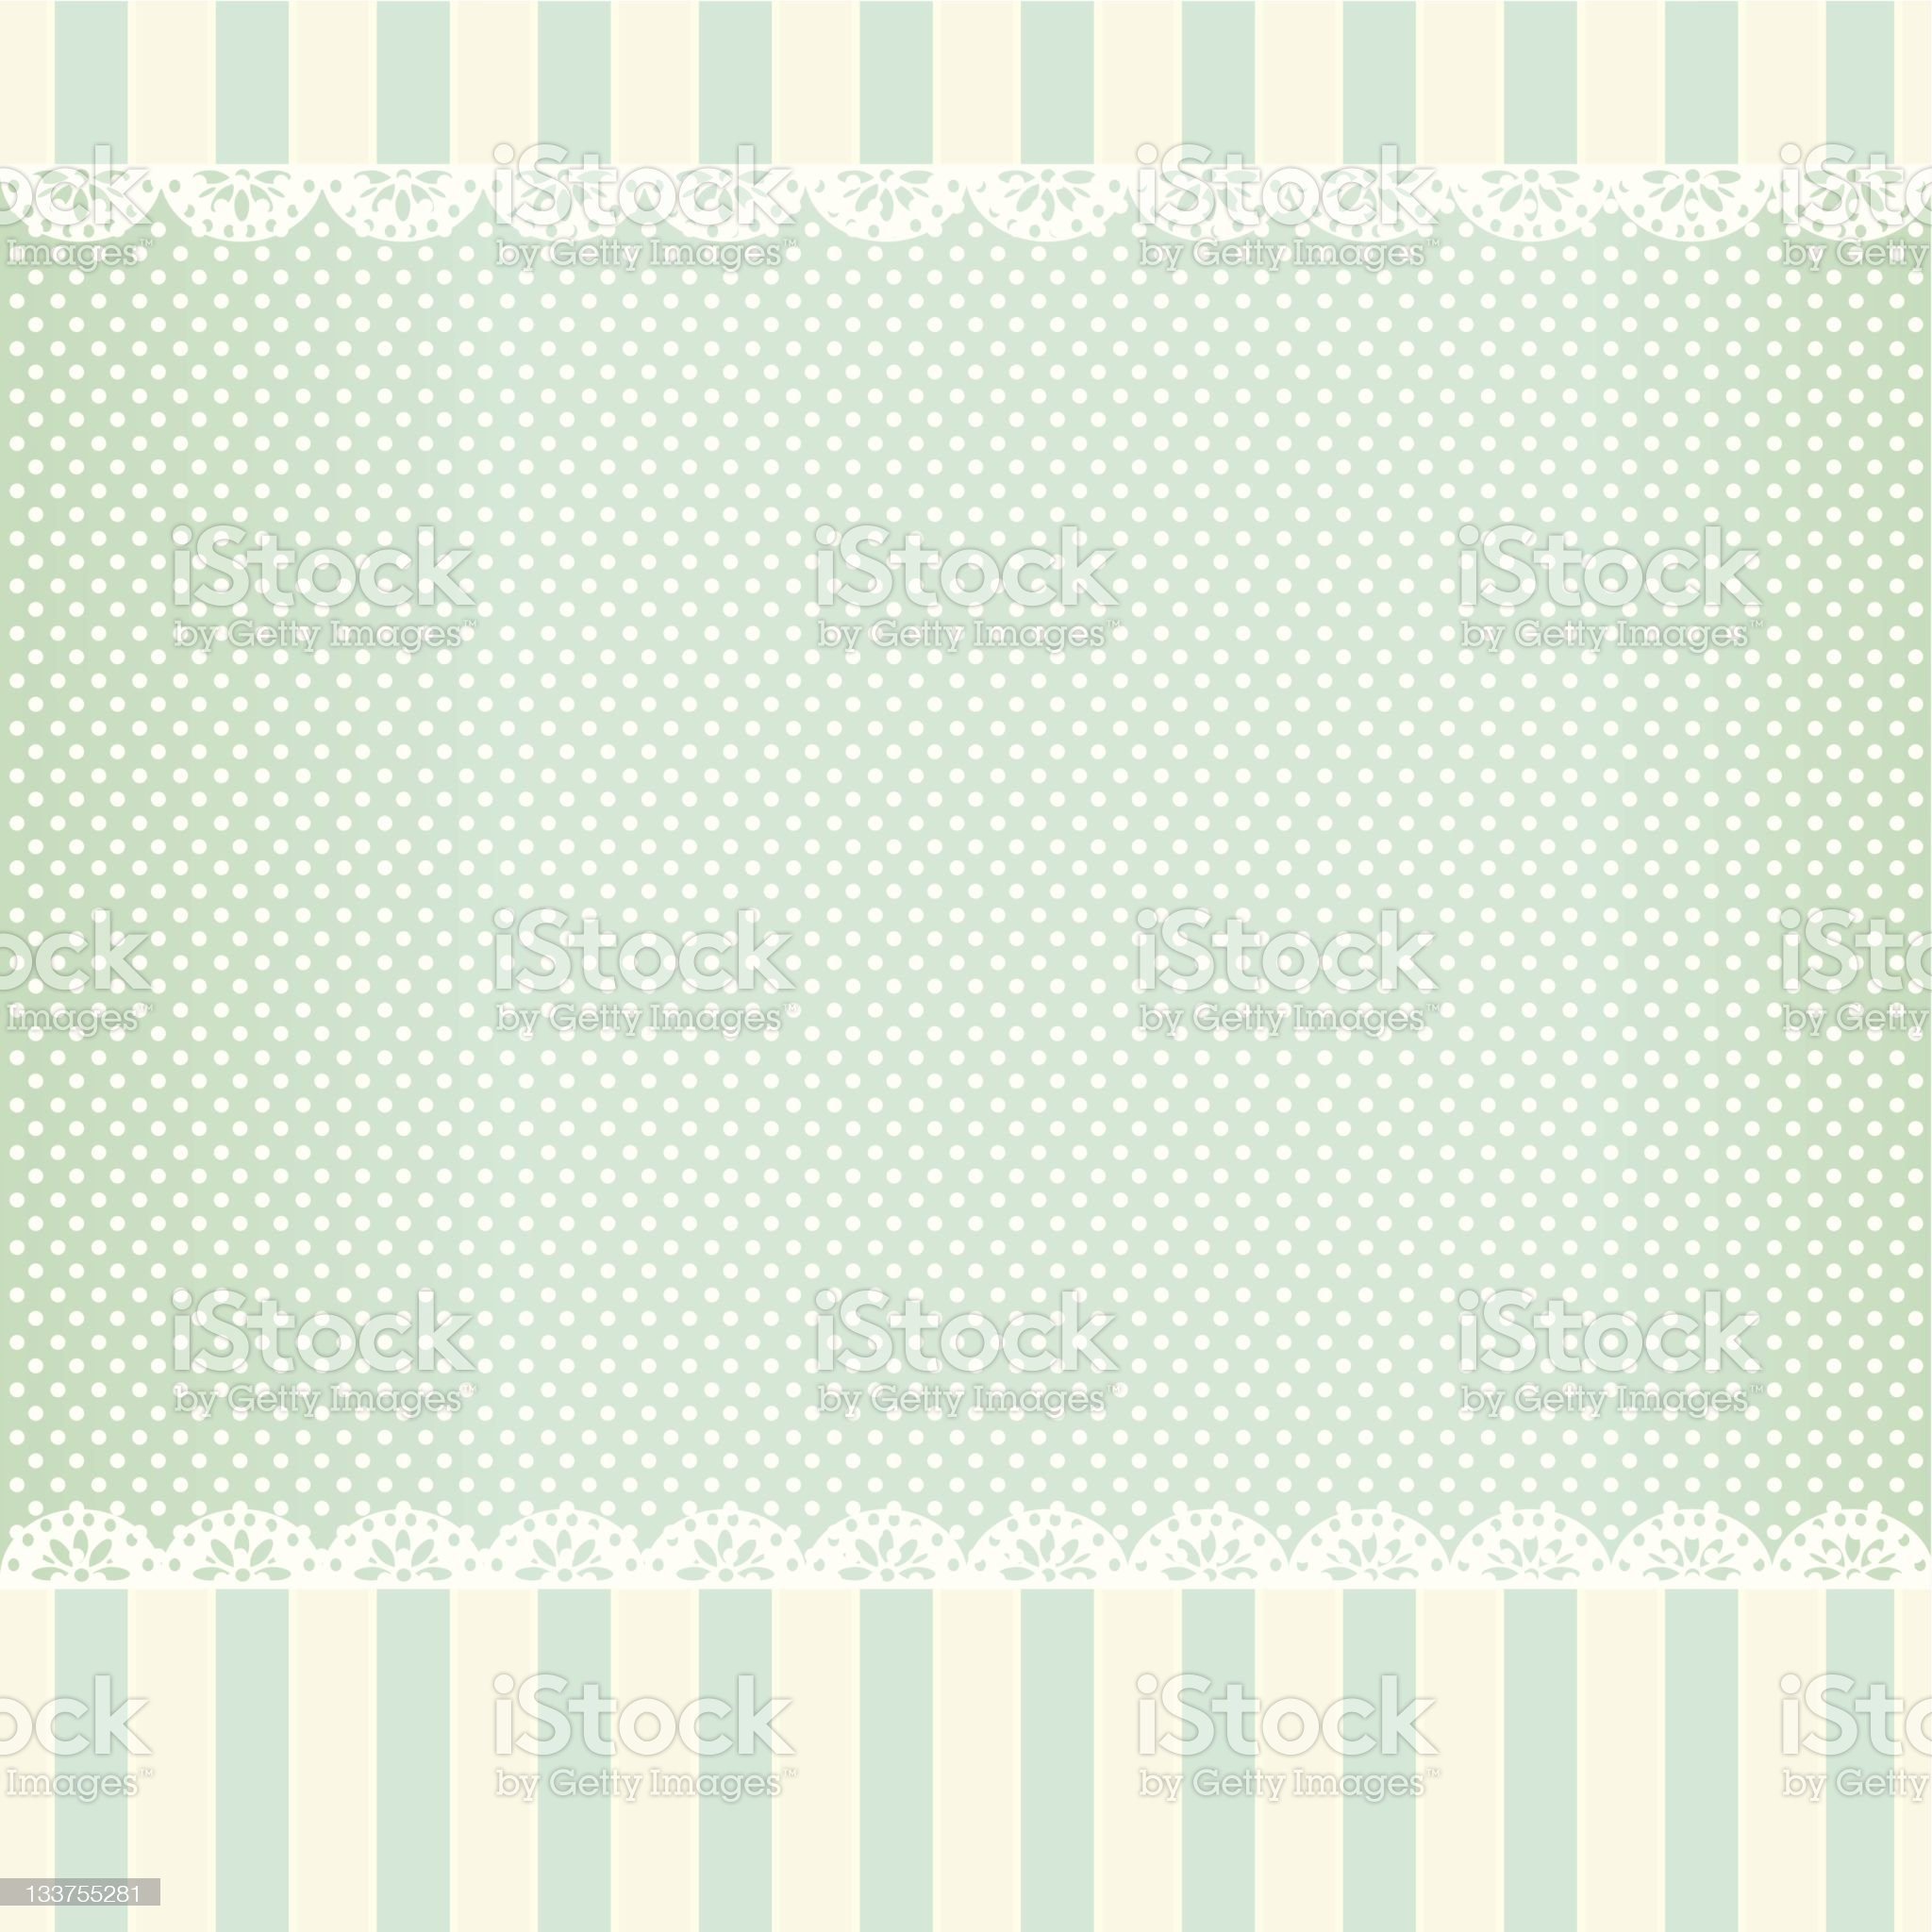 A vintage shabby chic styled background royalty-free stock vector art